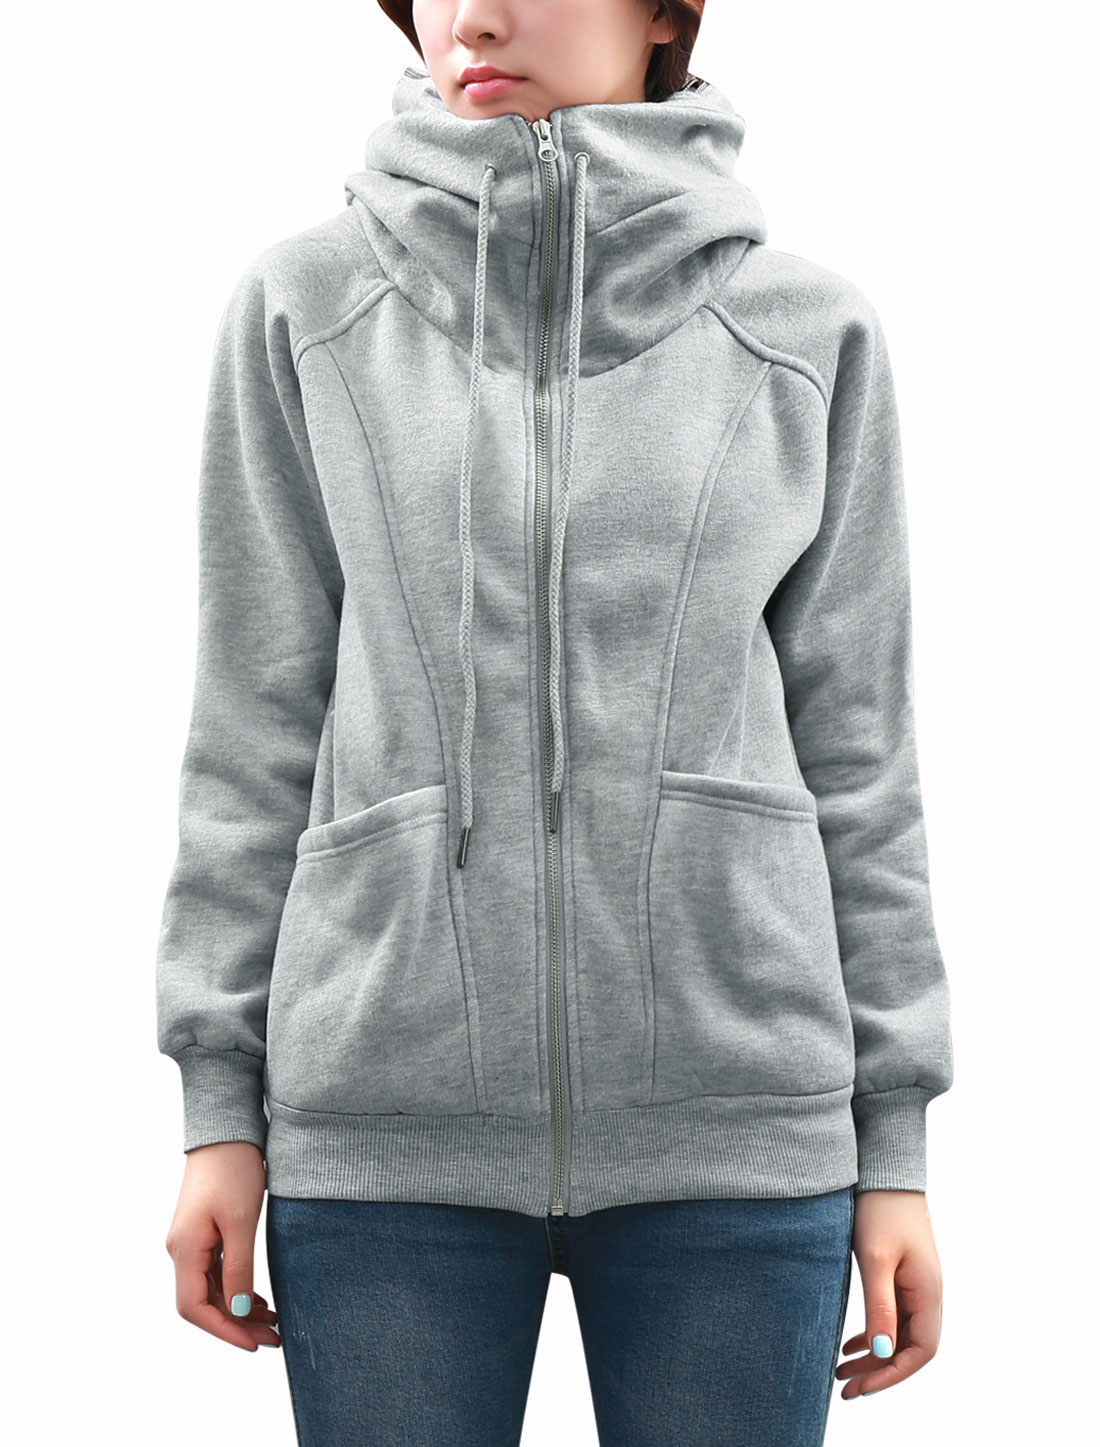 Women Hidden Hood Raglan Sleeve Zip Up Sweatshirt Light Gray M